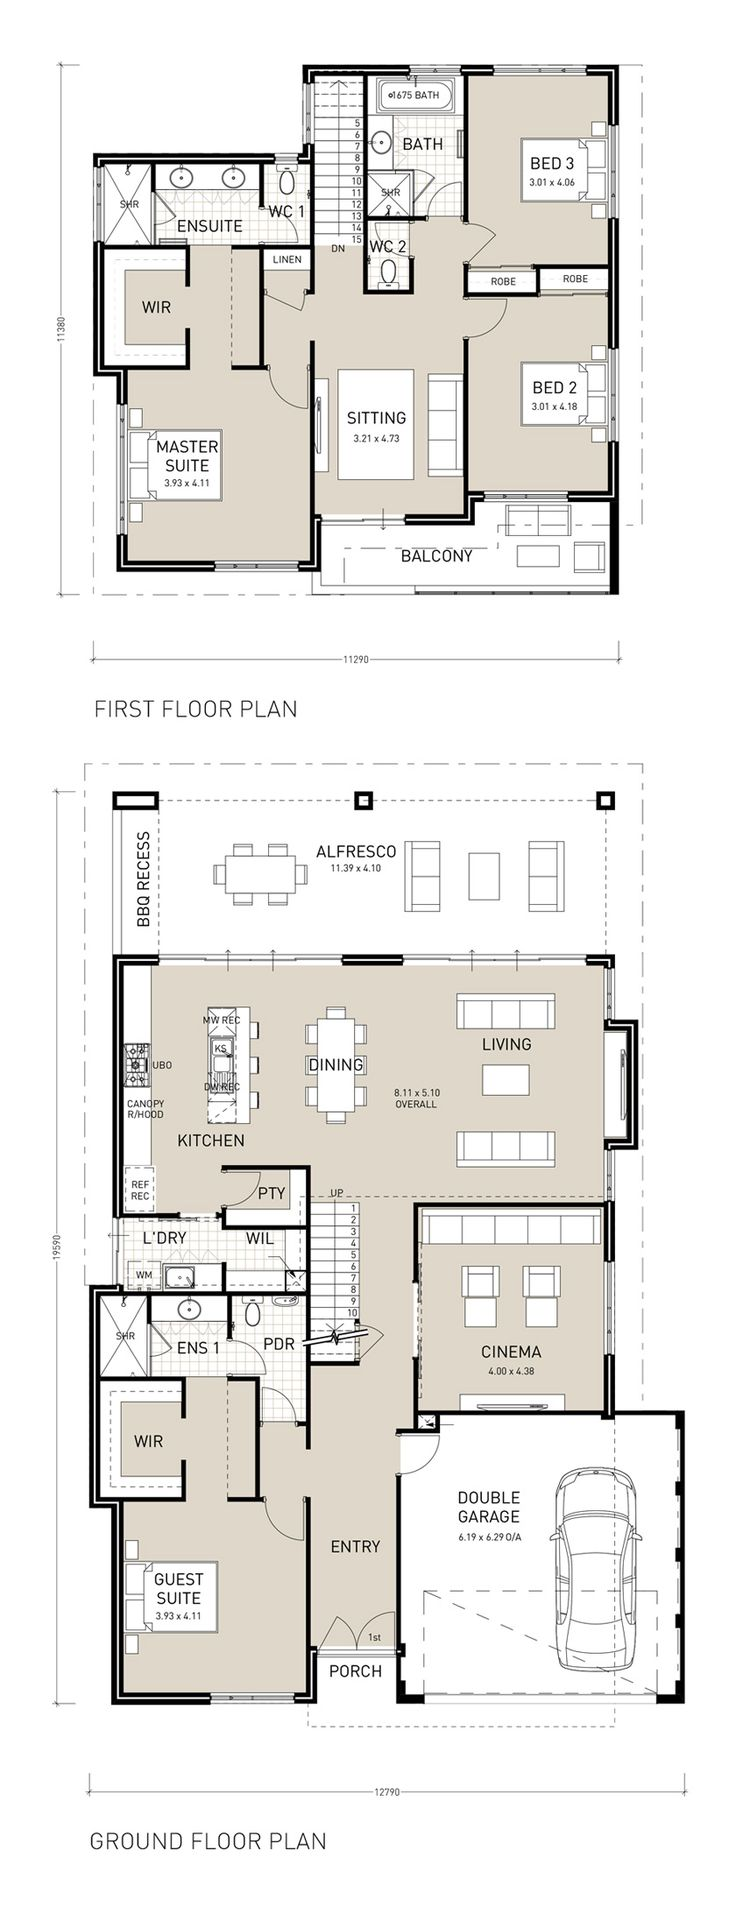 33 best reverse living house plans images on pinterest for Reverse living house plans